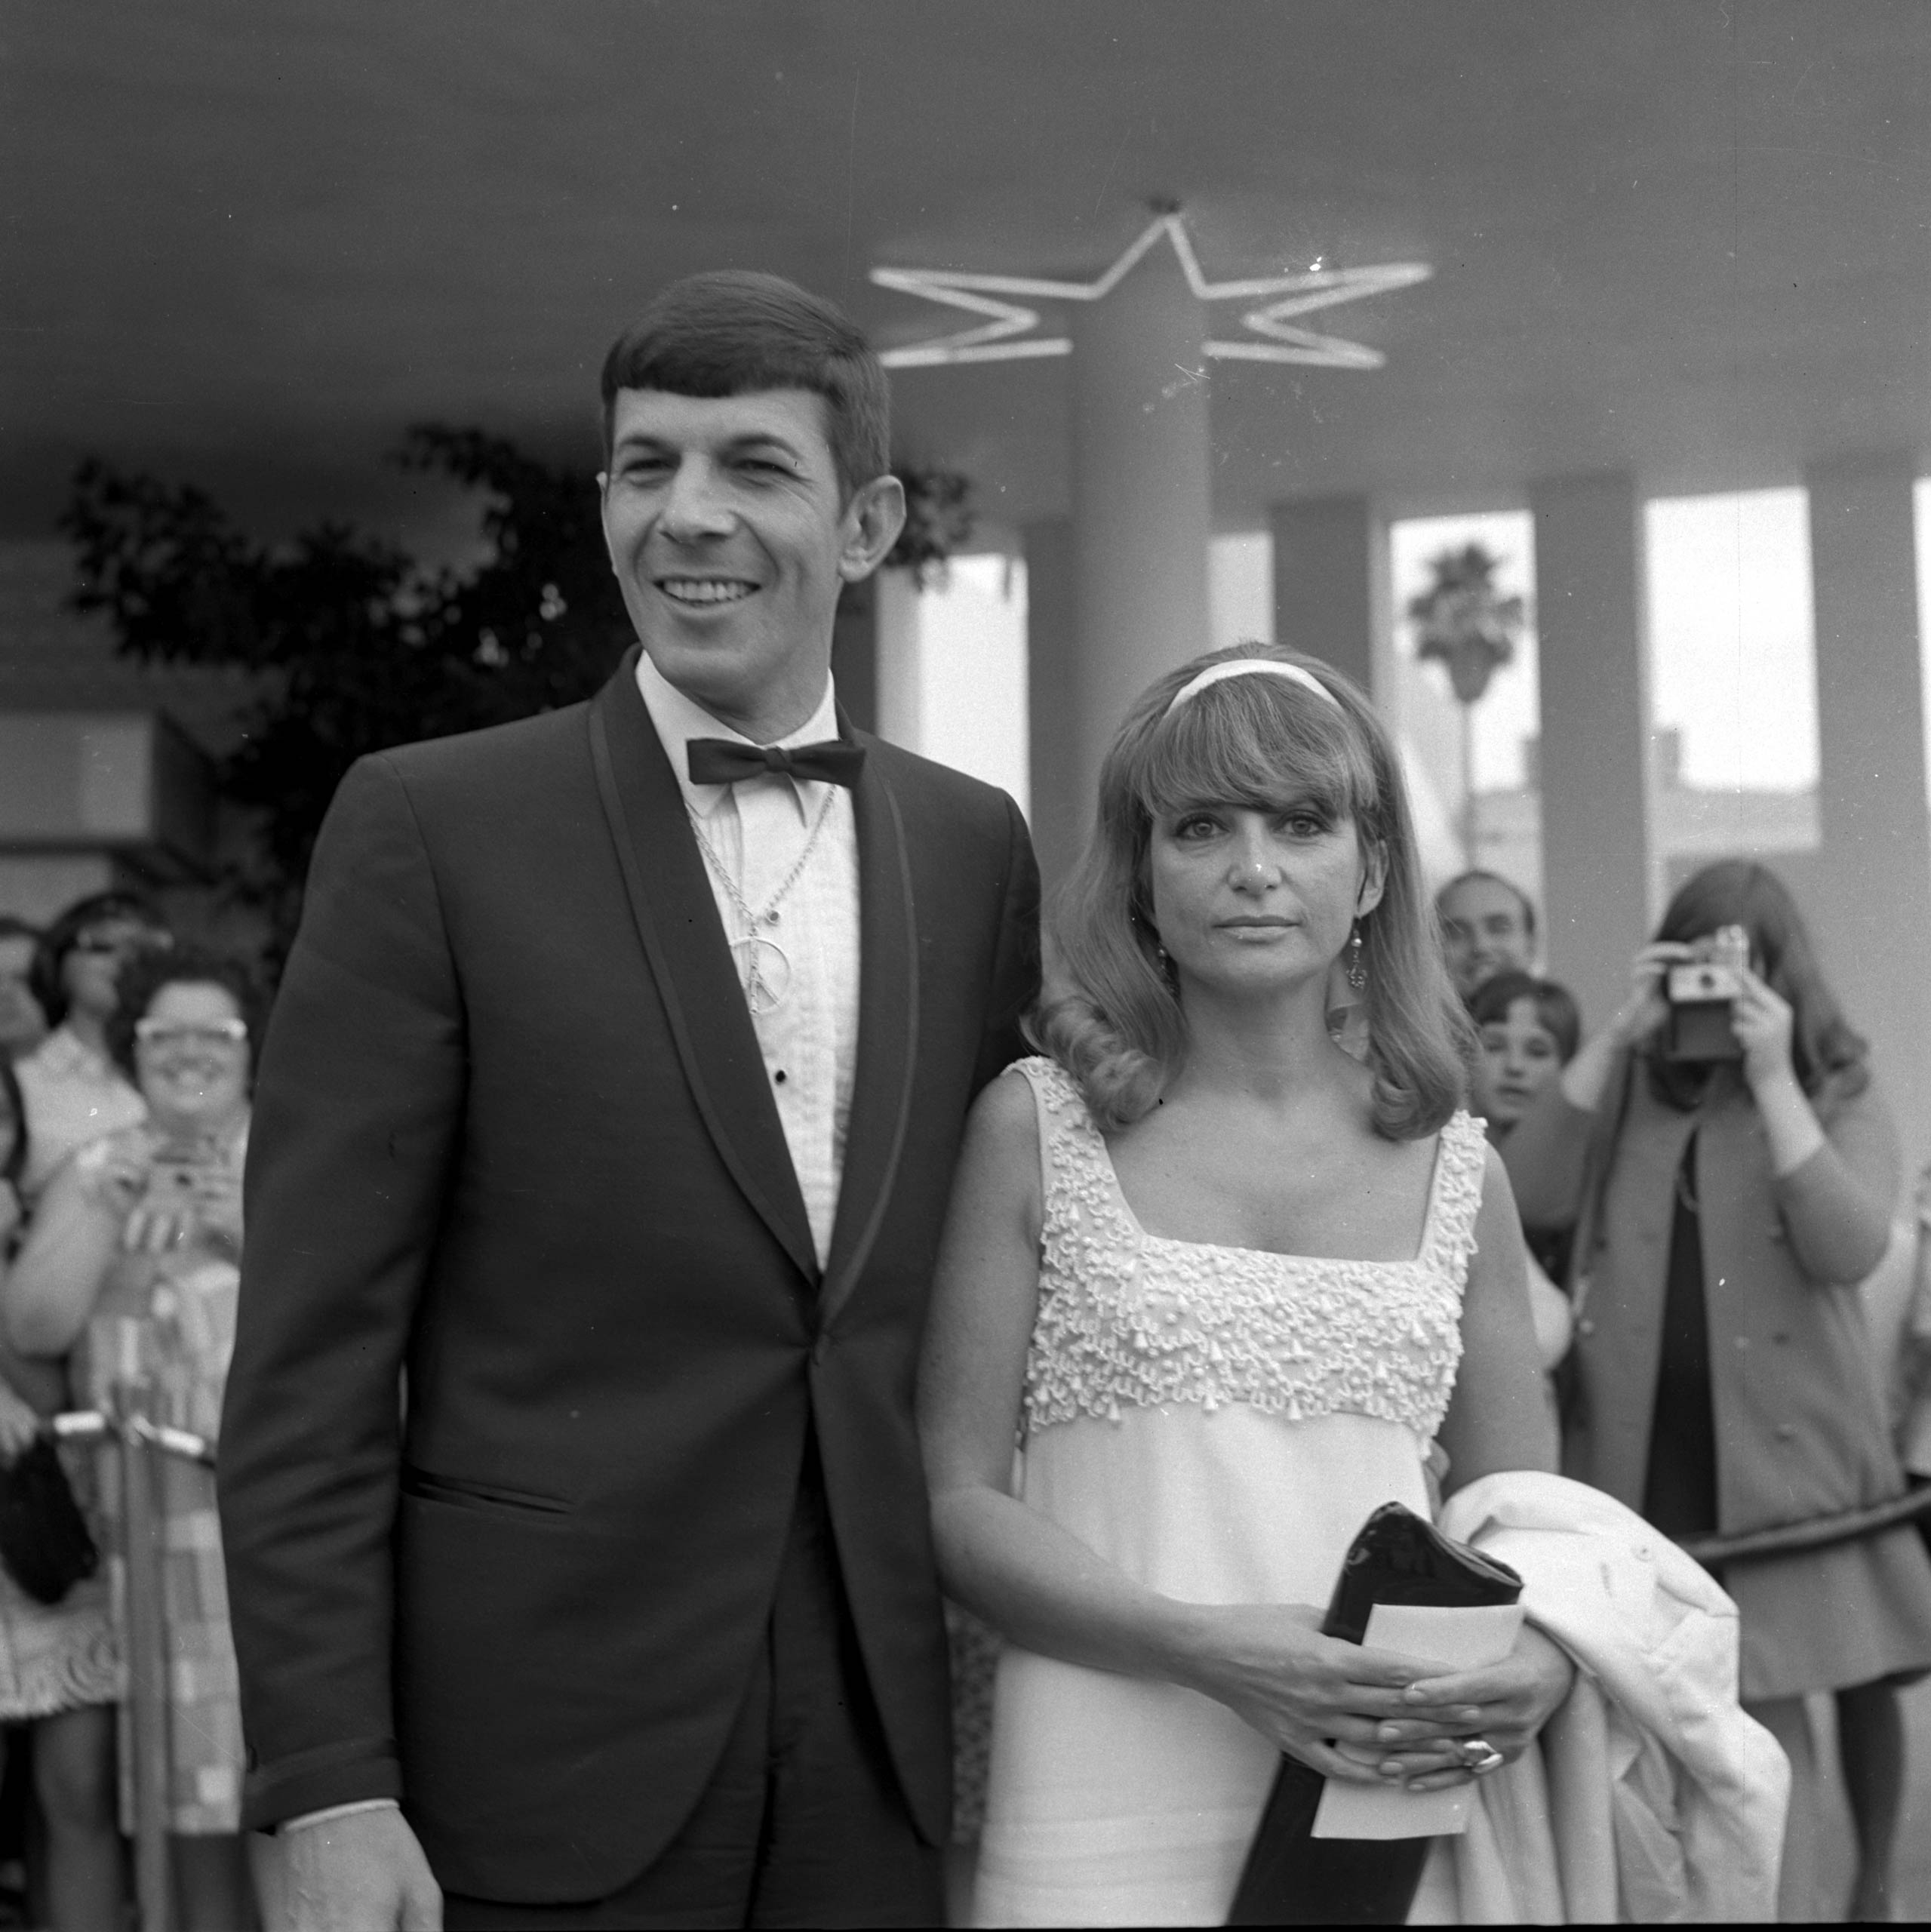 Leonard Nimoy with wife Sandra Zober attend an event in Los Angeles,Calif. in 1966.